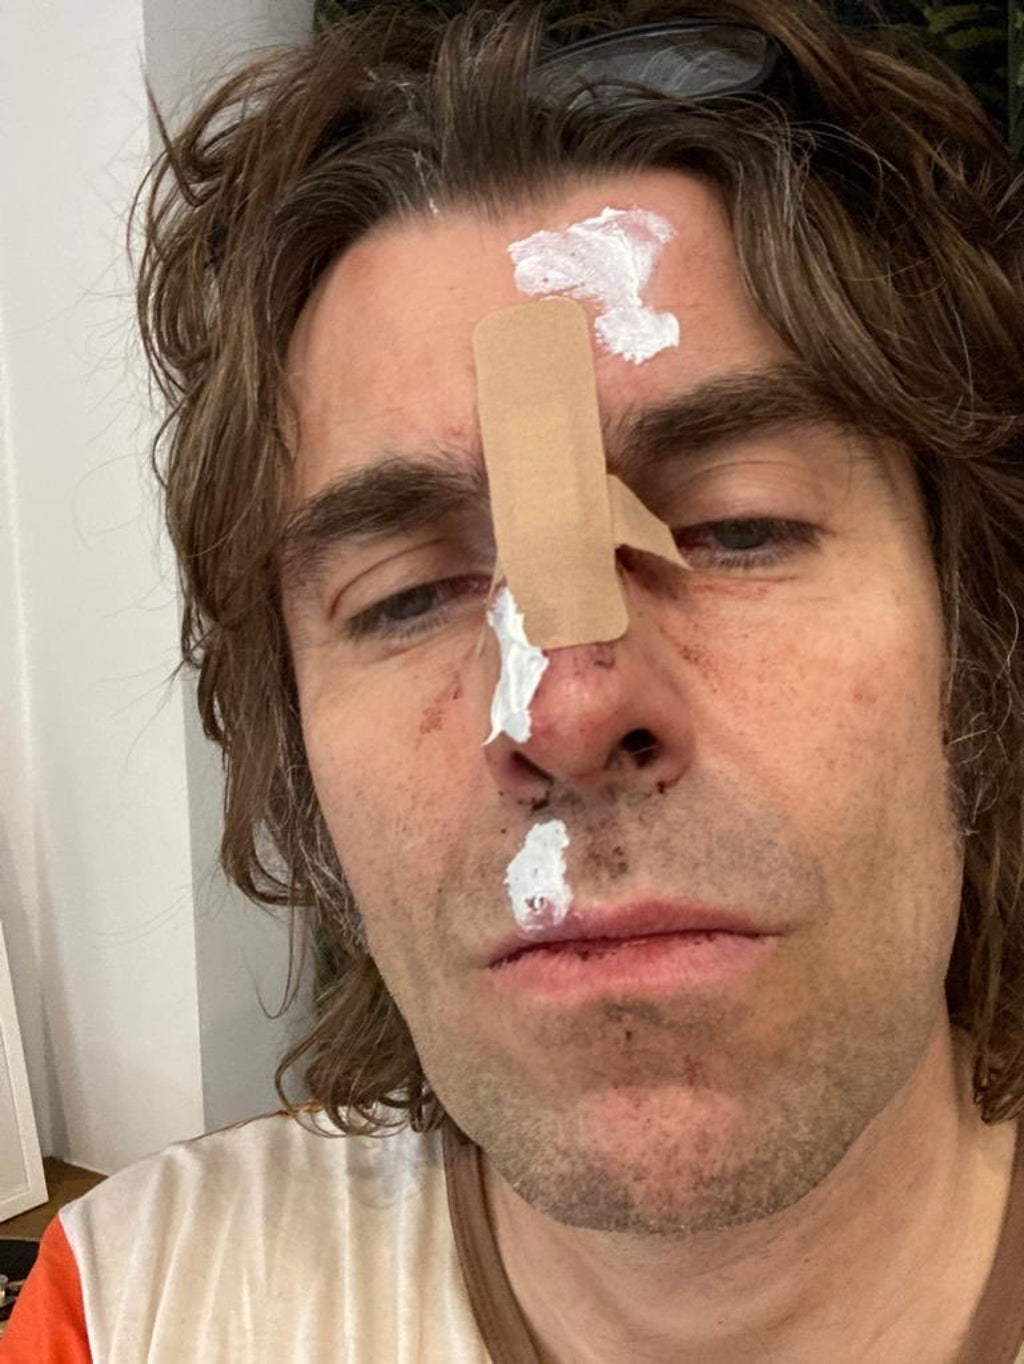 liam-gallagher-injured-'falling-from-a-helicopter'-after-headlining-isle-of-white-festival